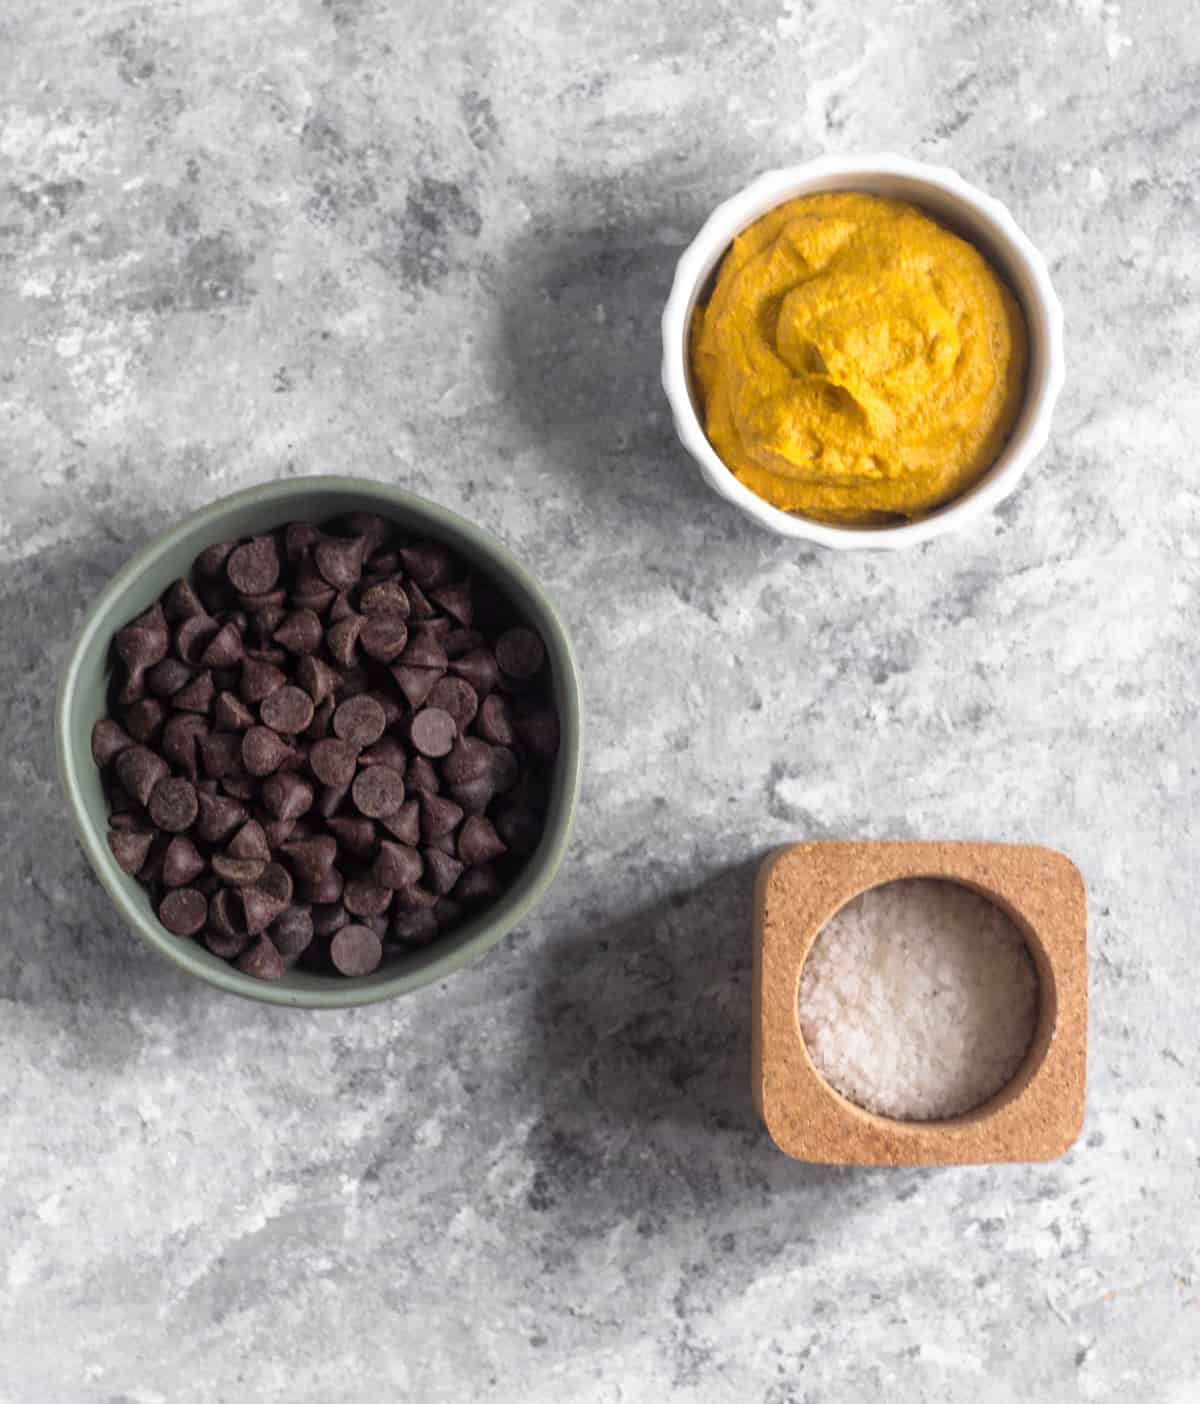 A bowl of chocolate chips, a bowl of pumpkin pie butter, and a container of sea salt on a grey surface